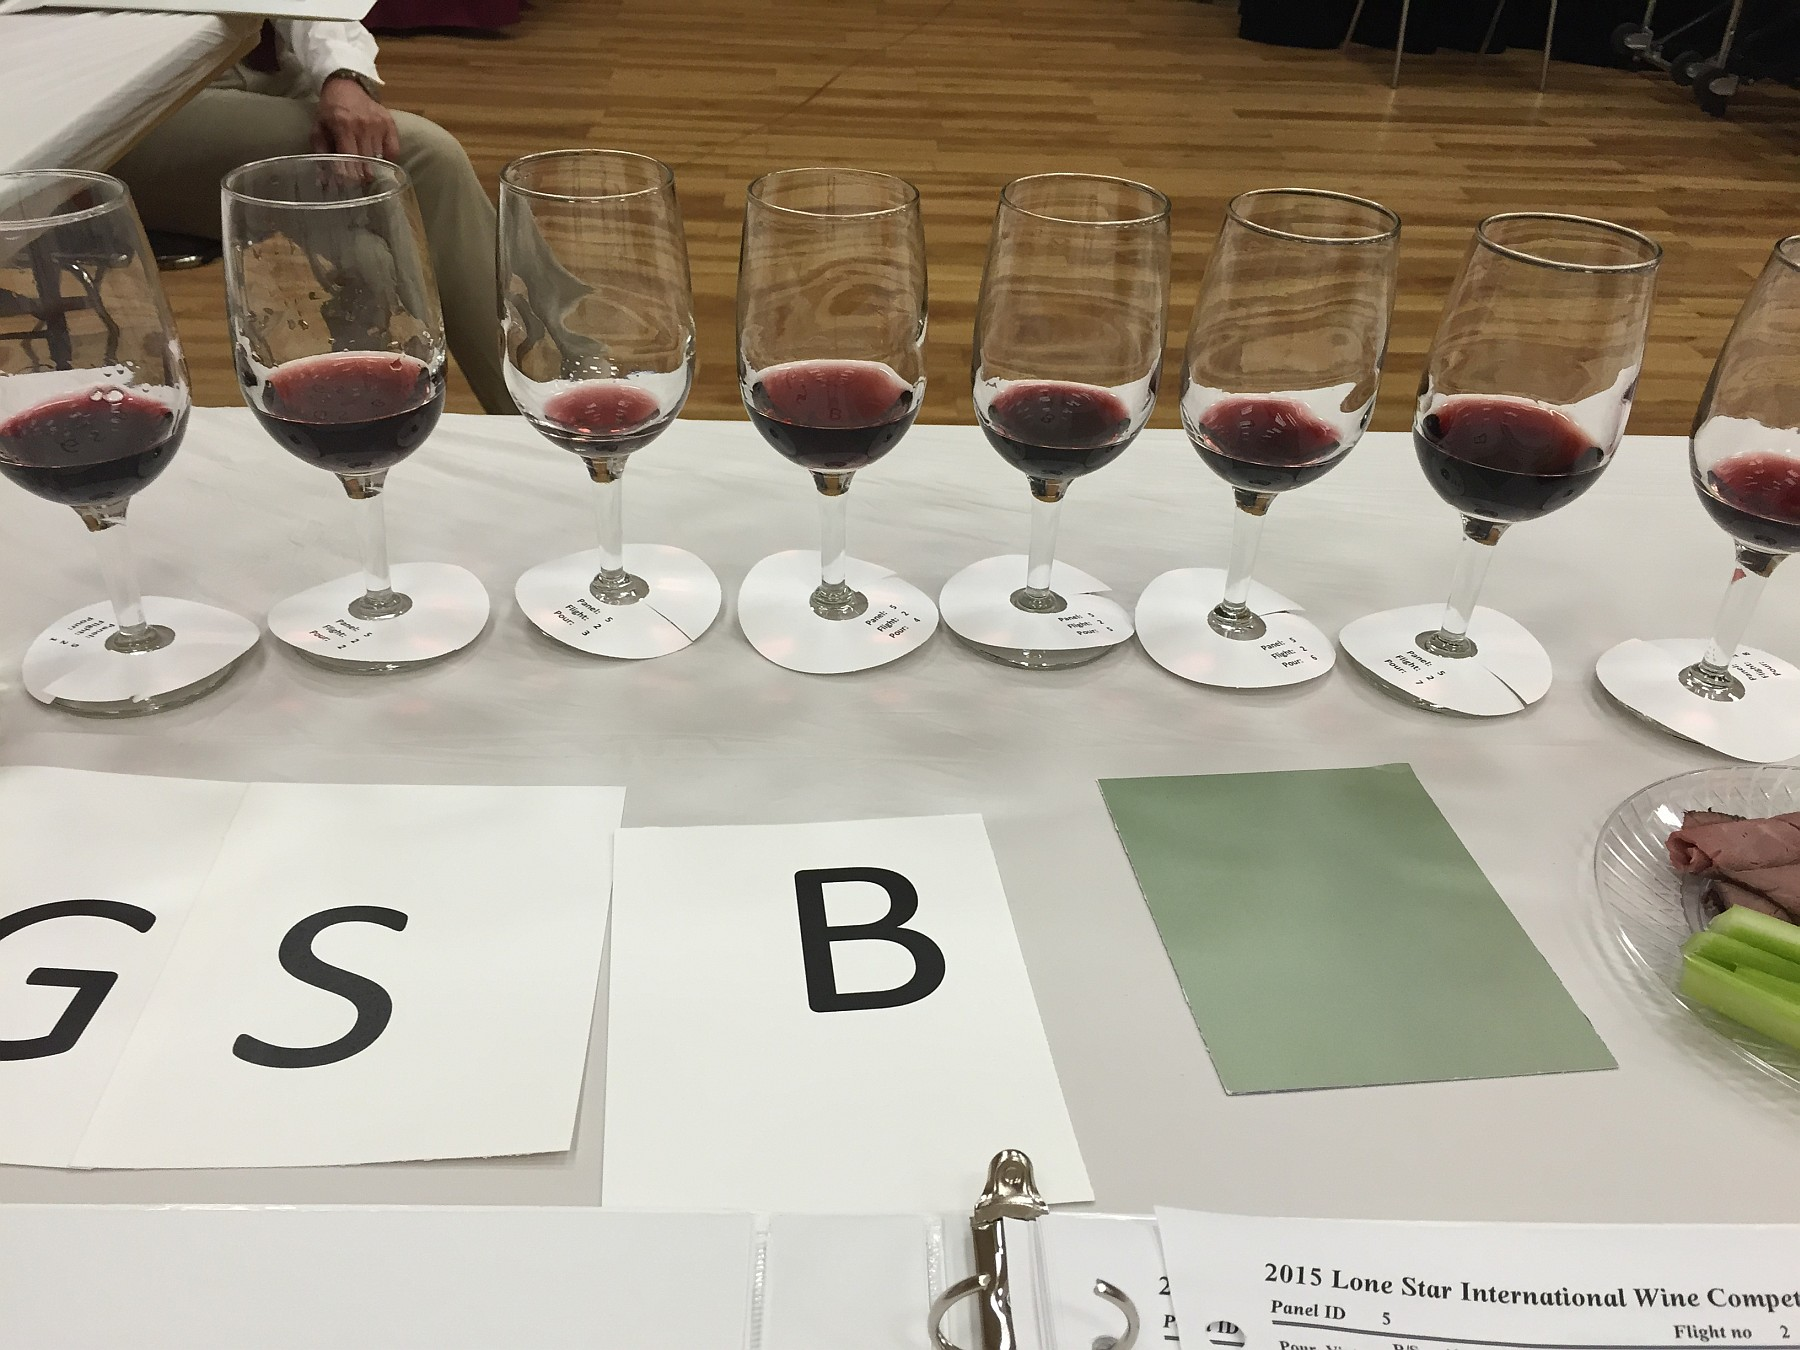 Lone Star International Wine Competition judging